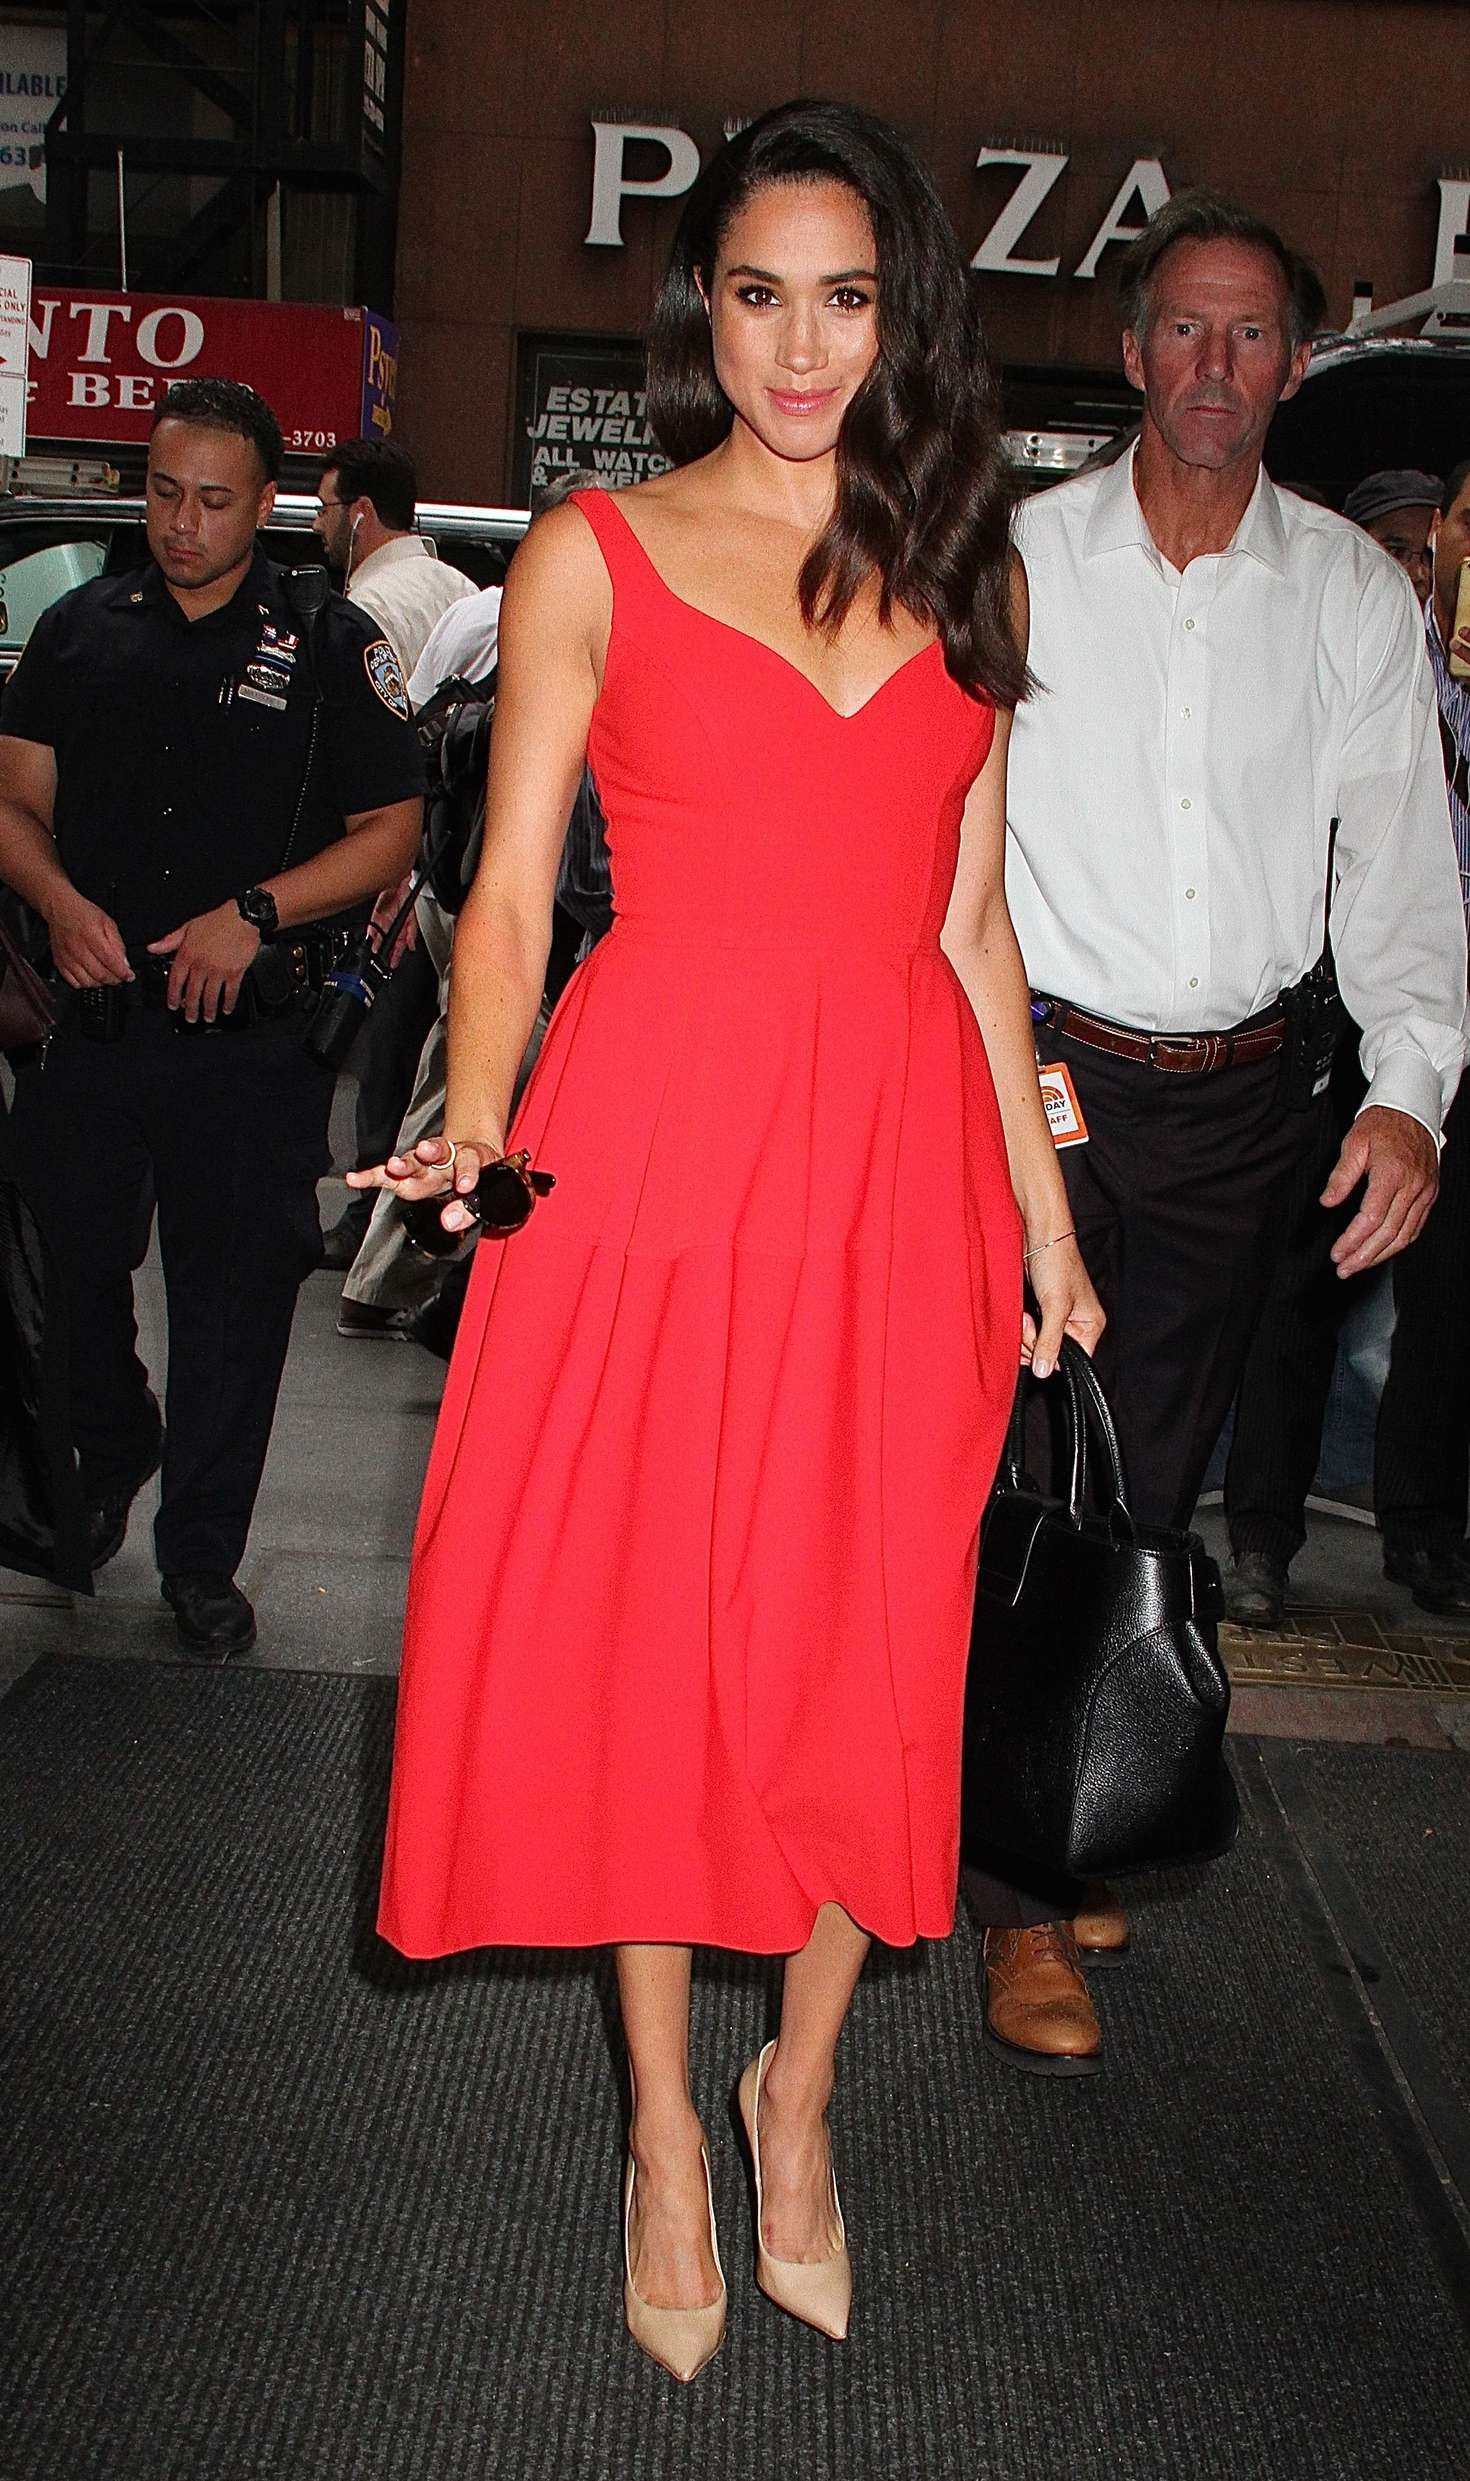 d47162b92fc431 Meghan Markle heads to the Today Show (July 15, 2016) wearing JILL ...